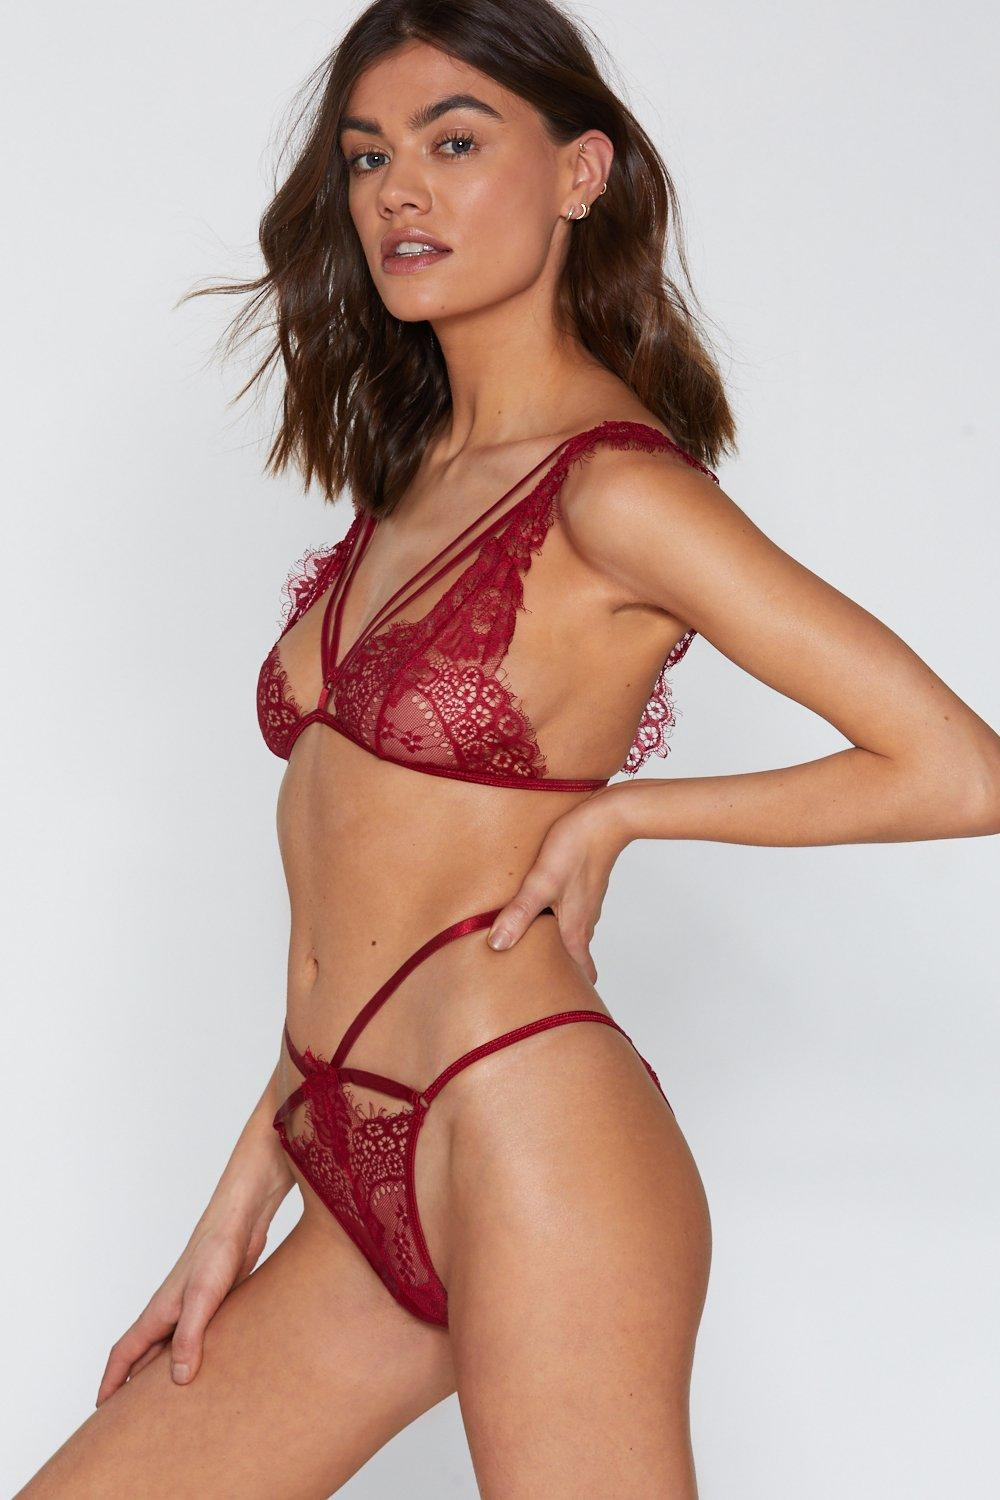 ad3ca090103 Burning Up Strappy Lace Bralette and Panty Set. Hover to zoom